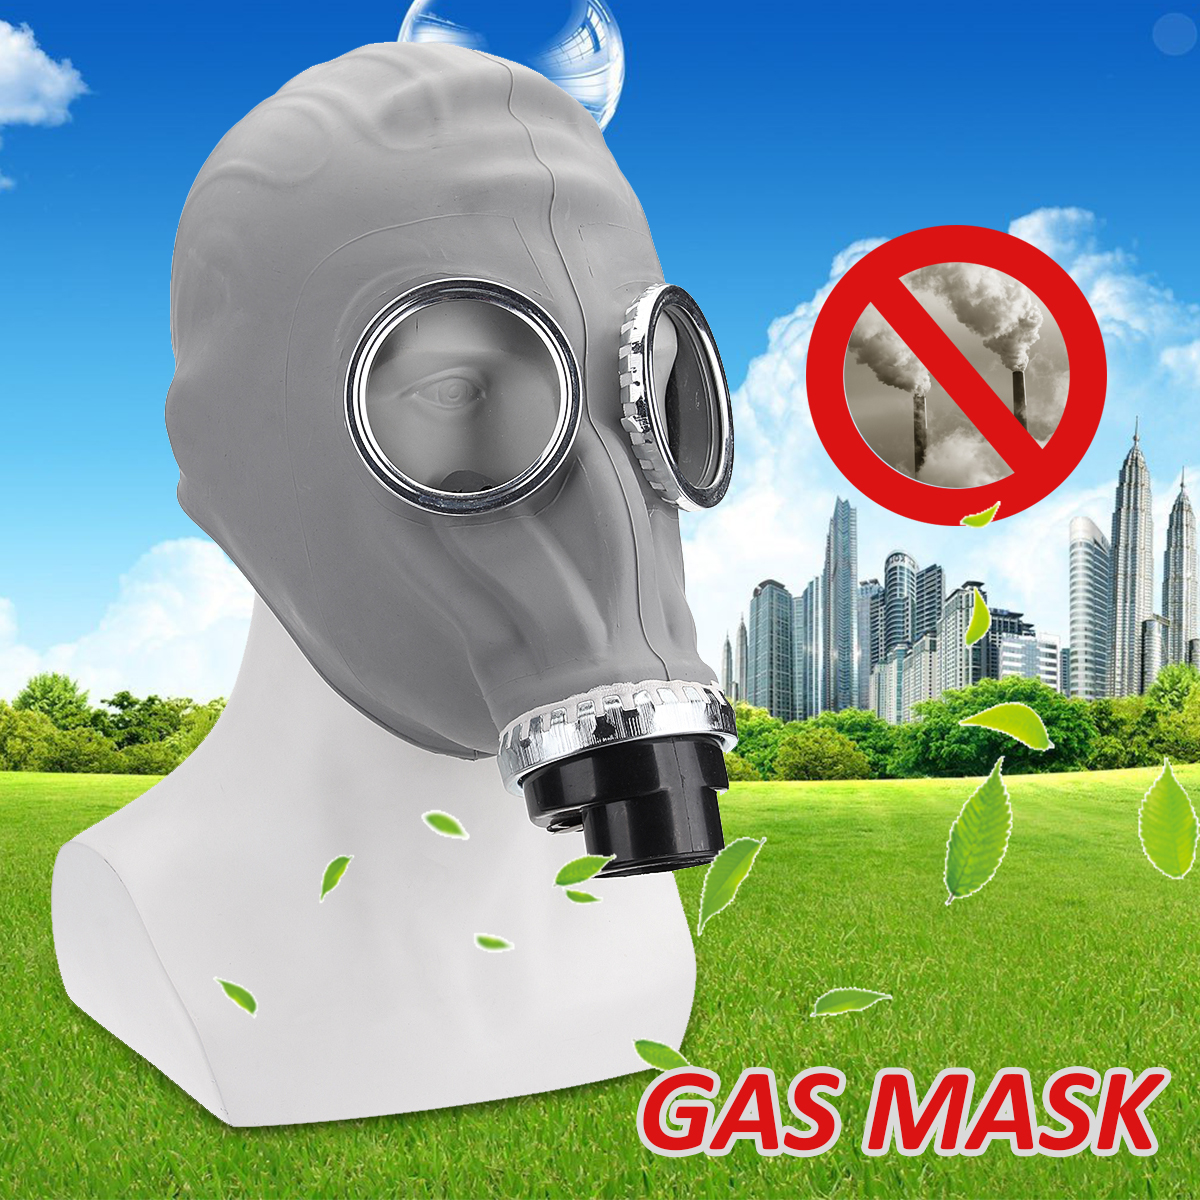 Medical Gas Dust Mask Full Face Mask Respirators Industrial Safety Chemical Gas Mask For Oil/Painting/Pharmaceutical/Laboratory цена